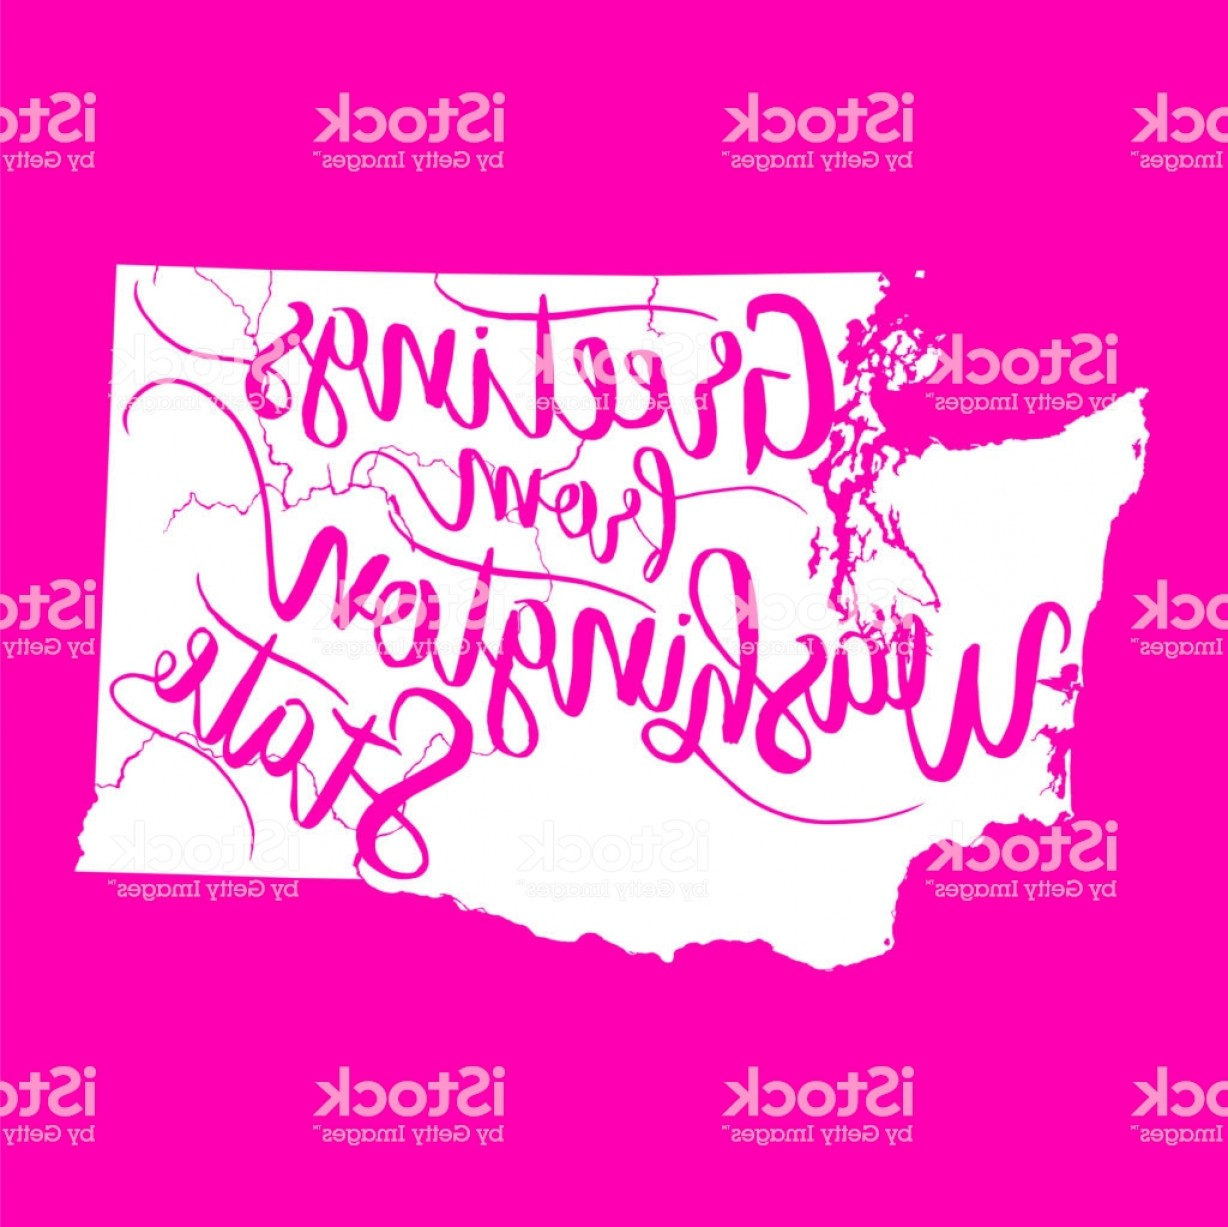 Washington State Map Vector: Greetings From Washington State Eps Vector Map Gm